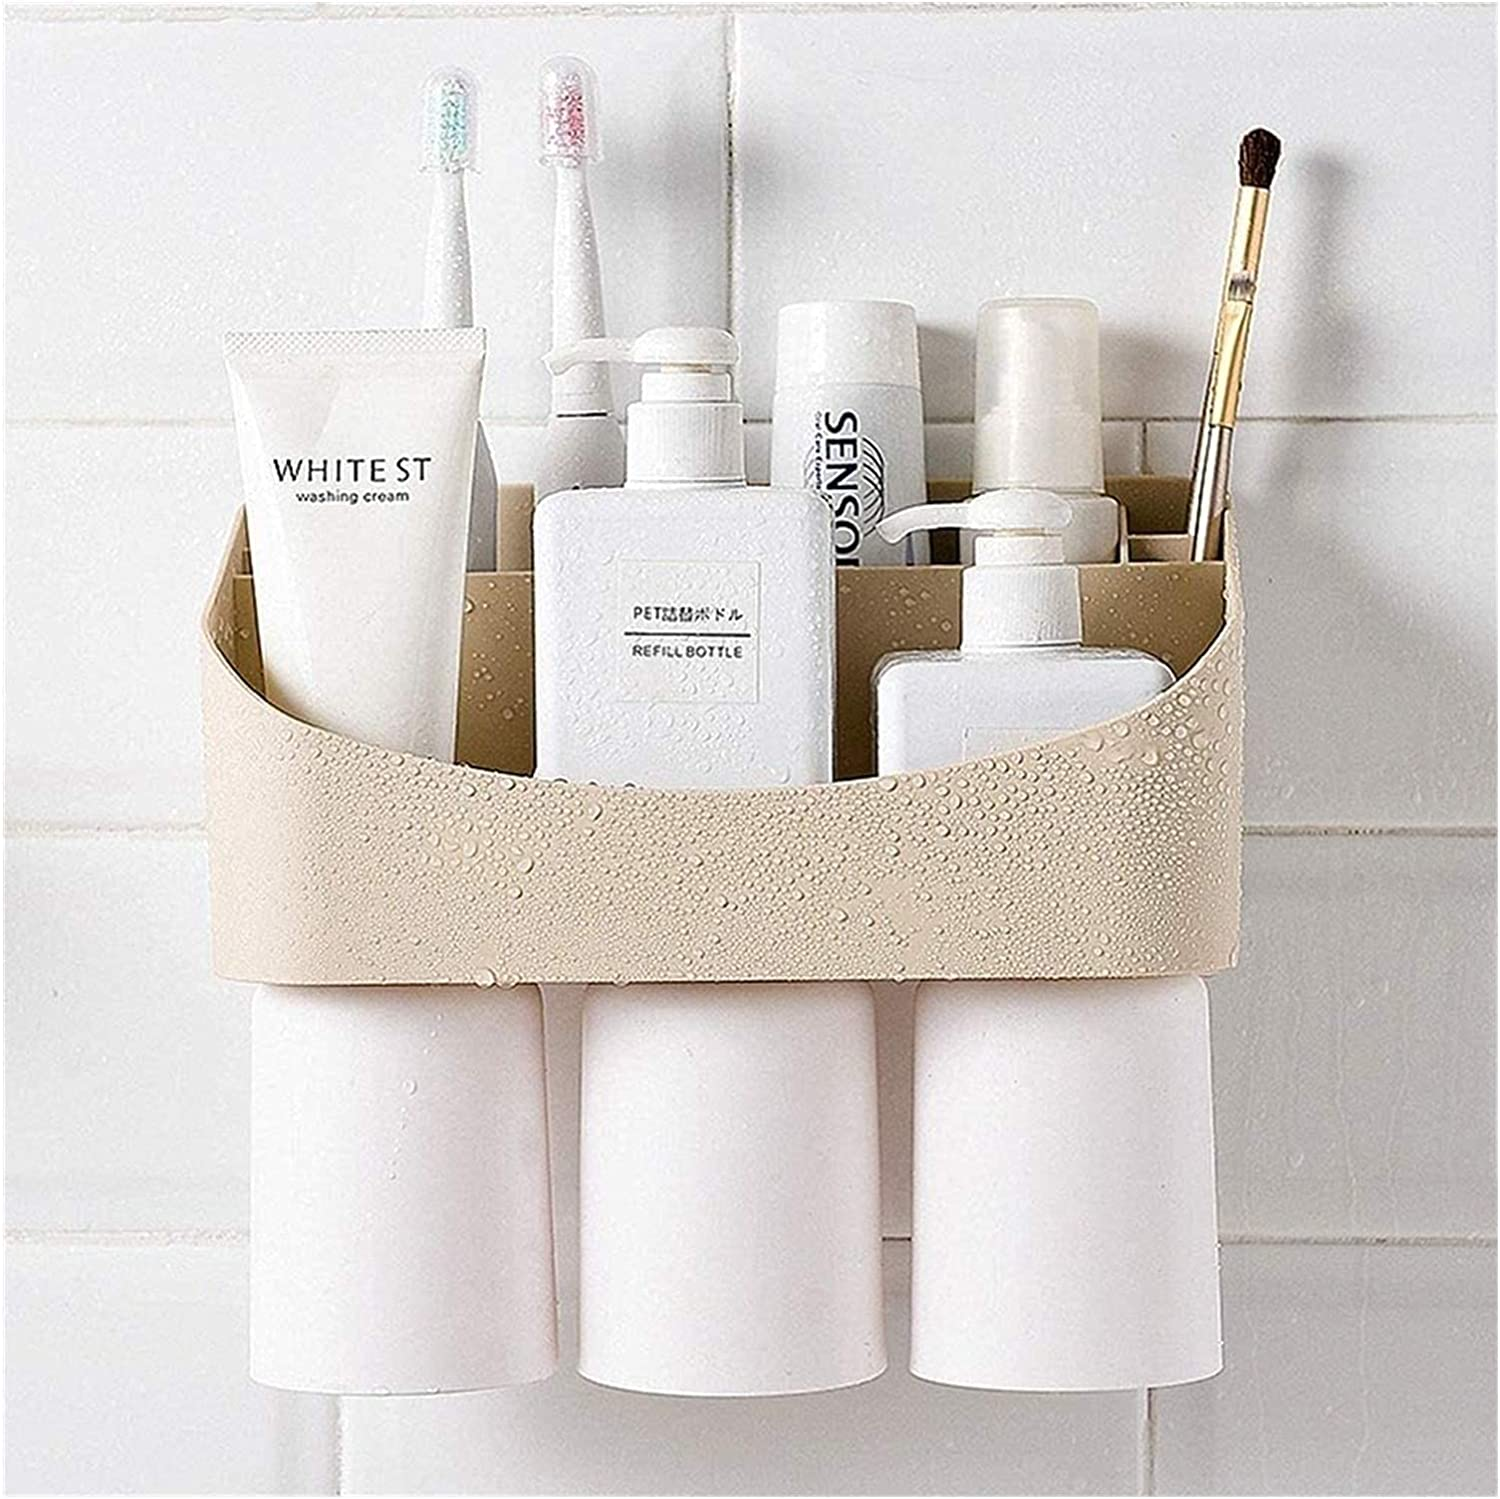 NUGYE Toothbrush and Max New item 52% OFF Toothpaste Holder Shelf Storage Or Bathroom